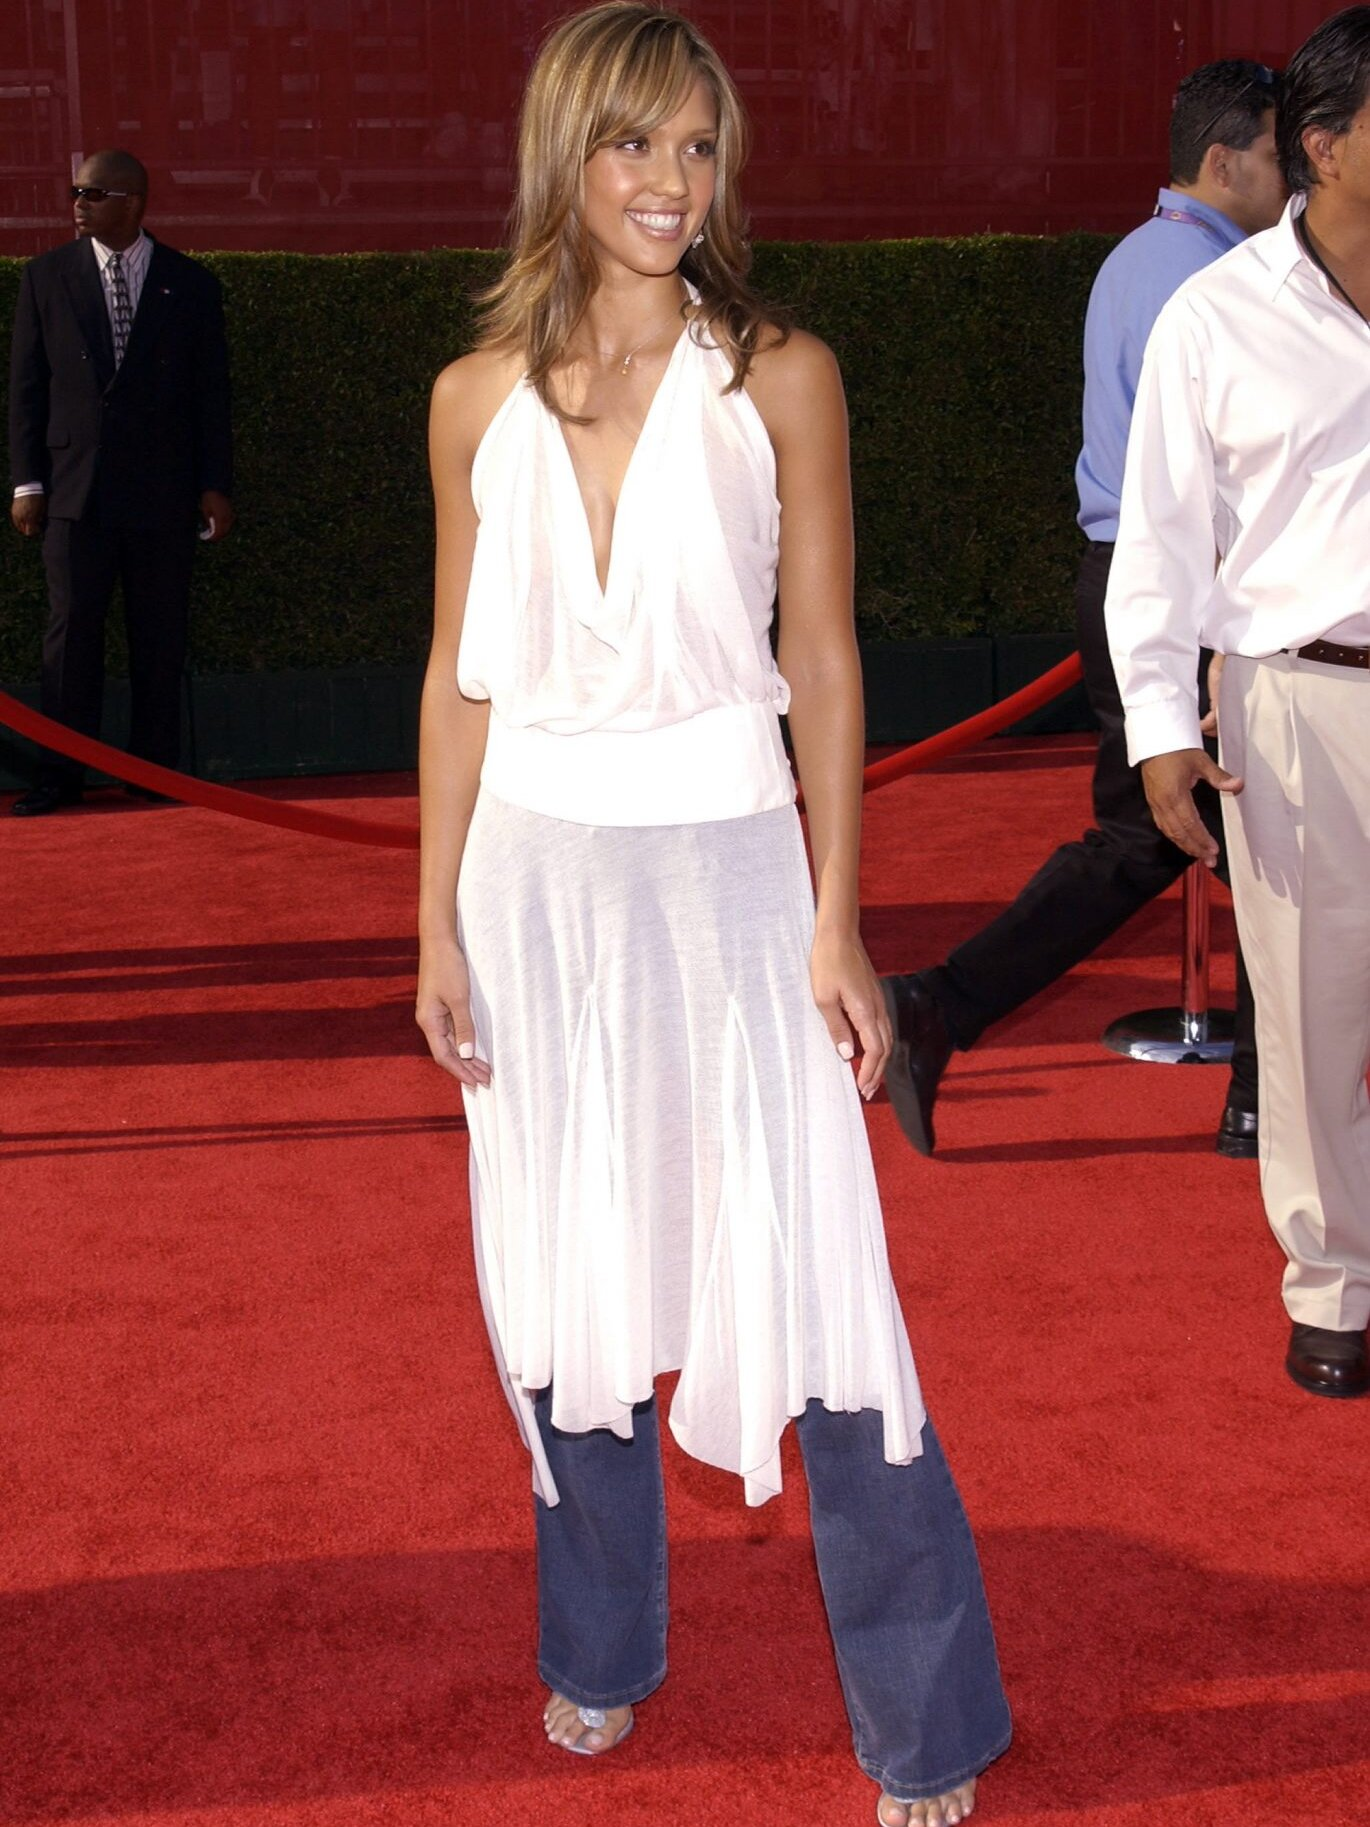 15 Early Aughts Red Carpet Looks That Will Make You Emotional Instyle